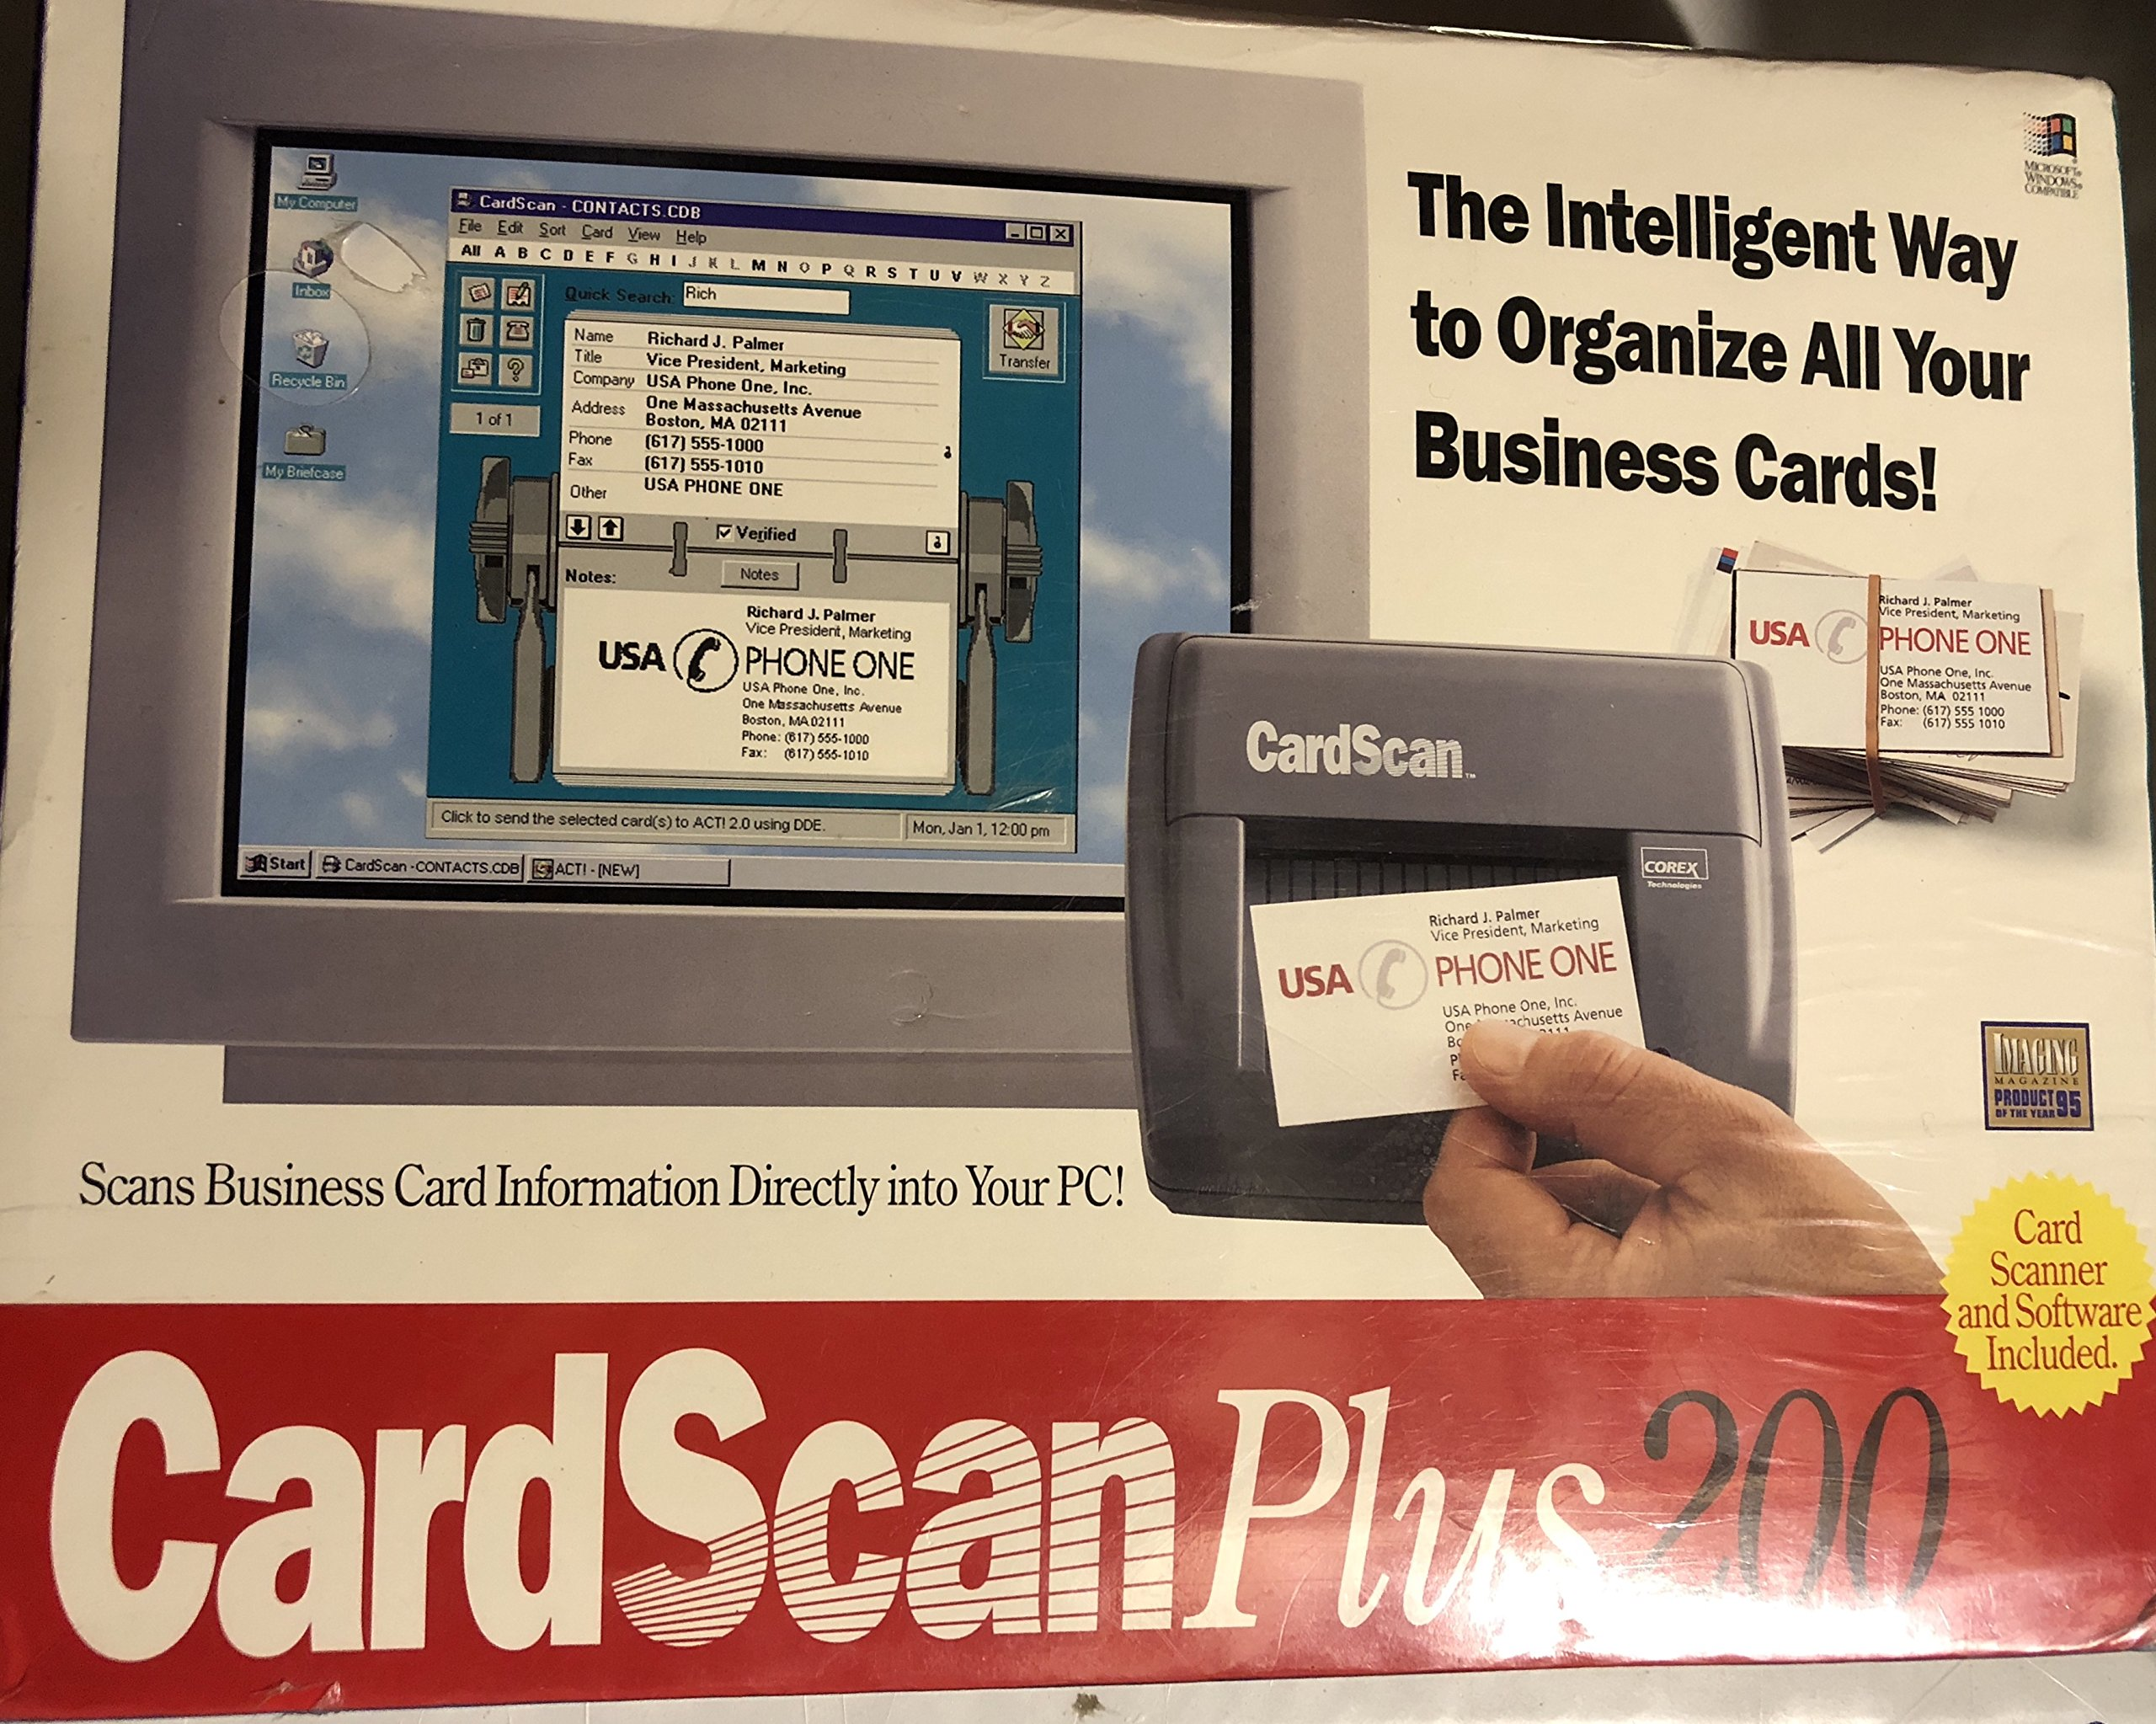 CardScan Plus 200 (The Intelligent Way To Organize Your Business Cards)